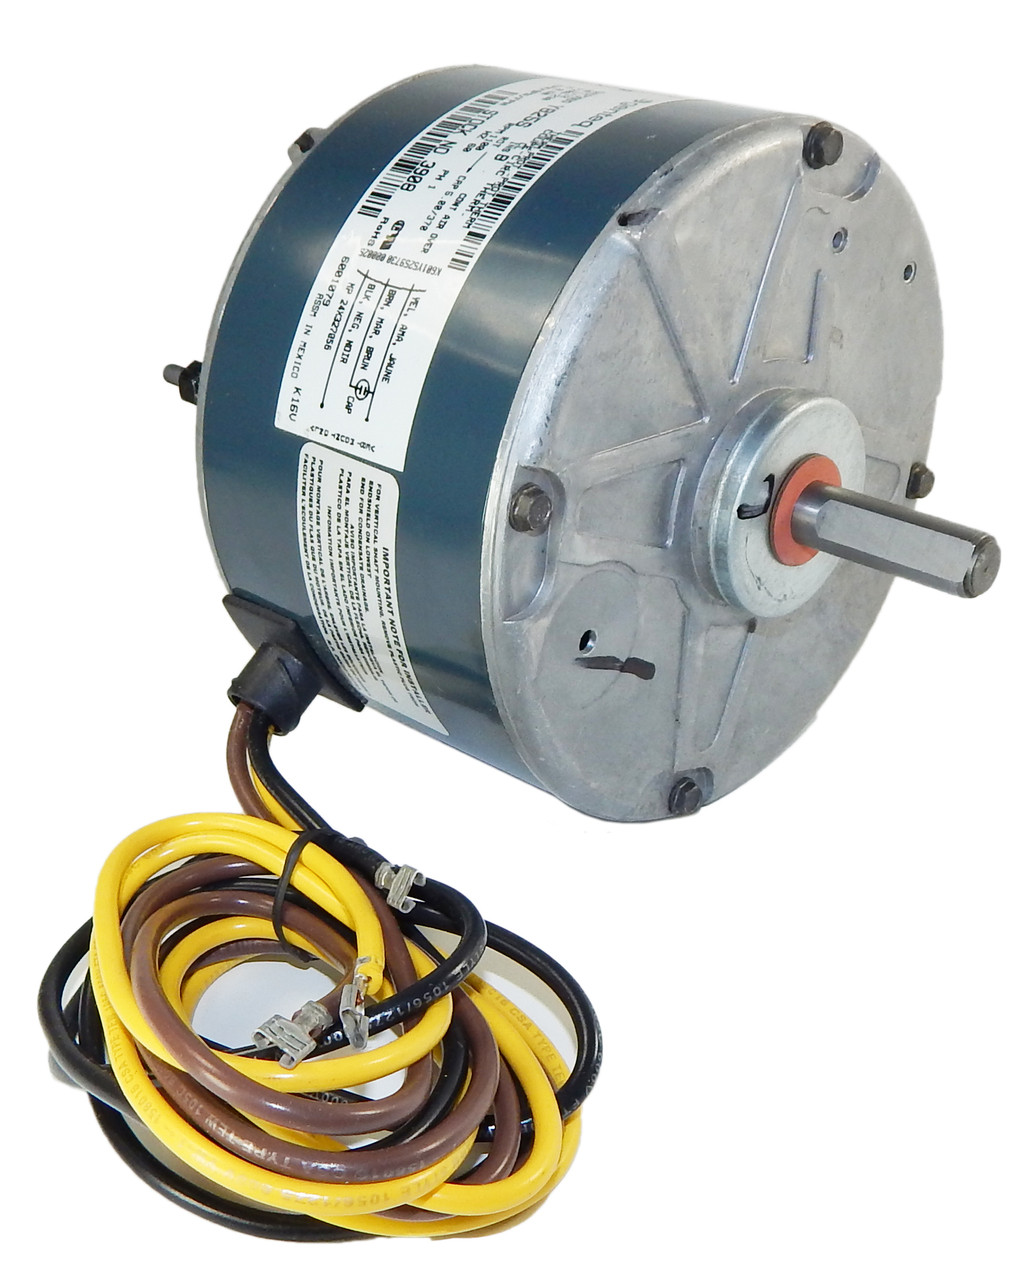 medium resolution of carrier condenser electric motor 5kcp39bgy825s 1 12hp 1075 rpm 208 230v g3908